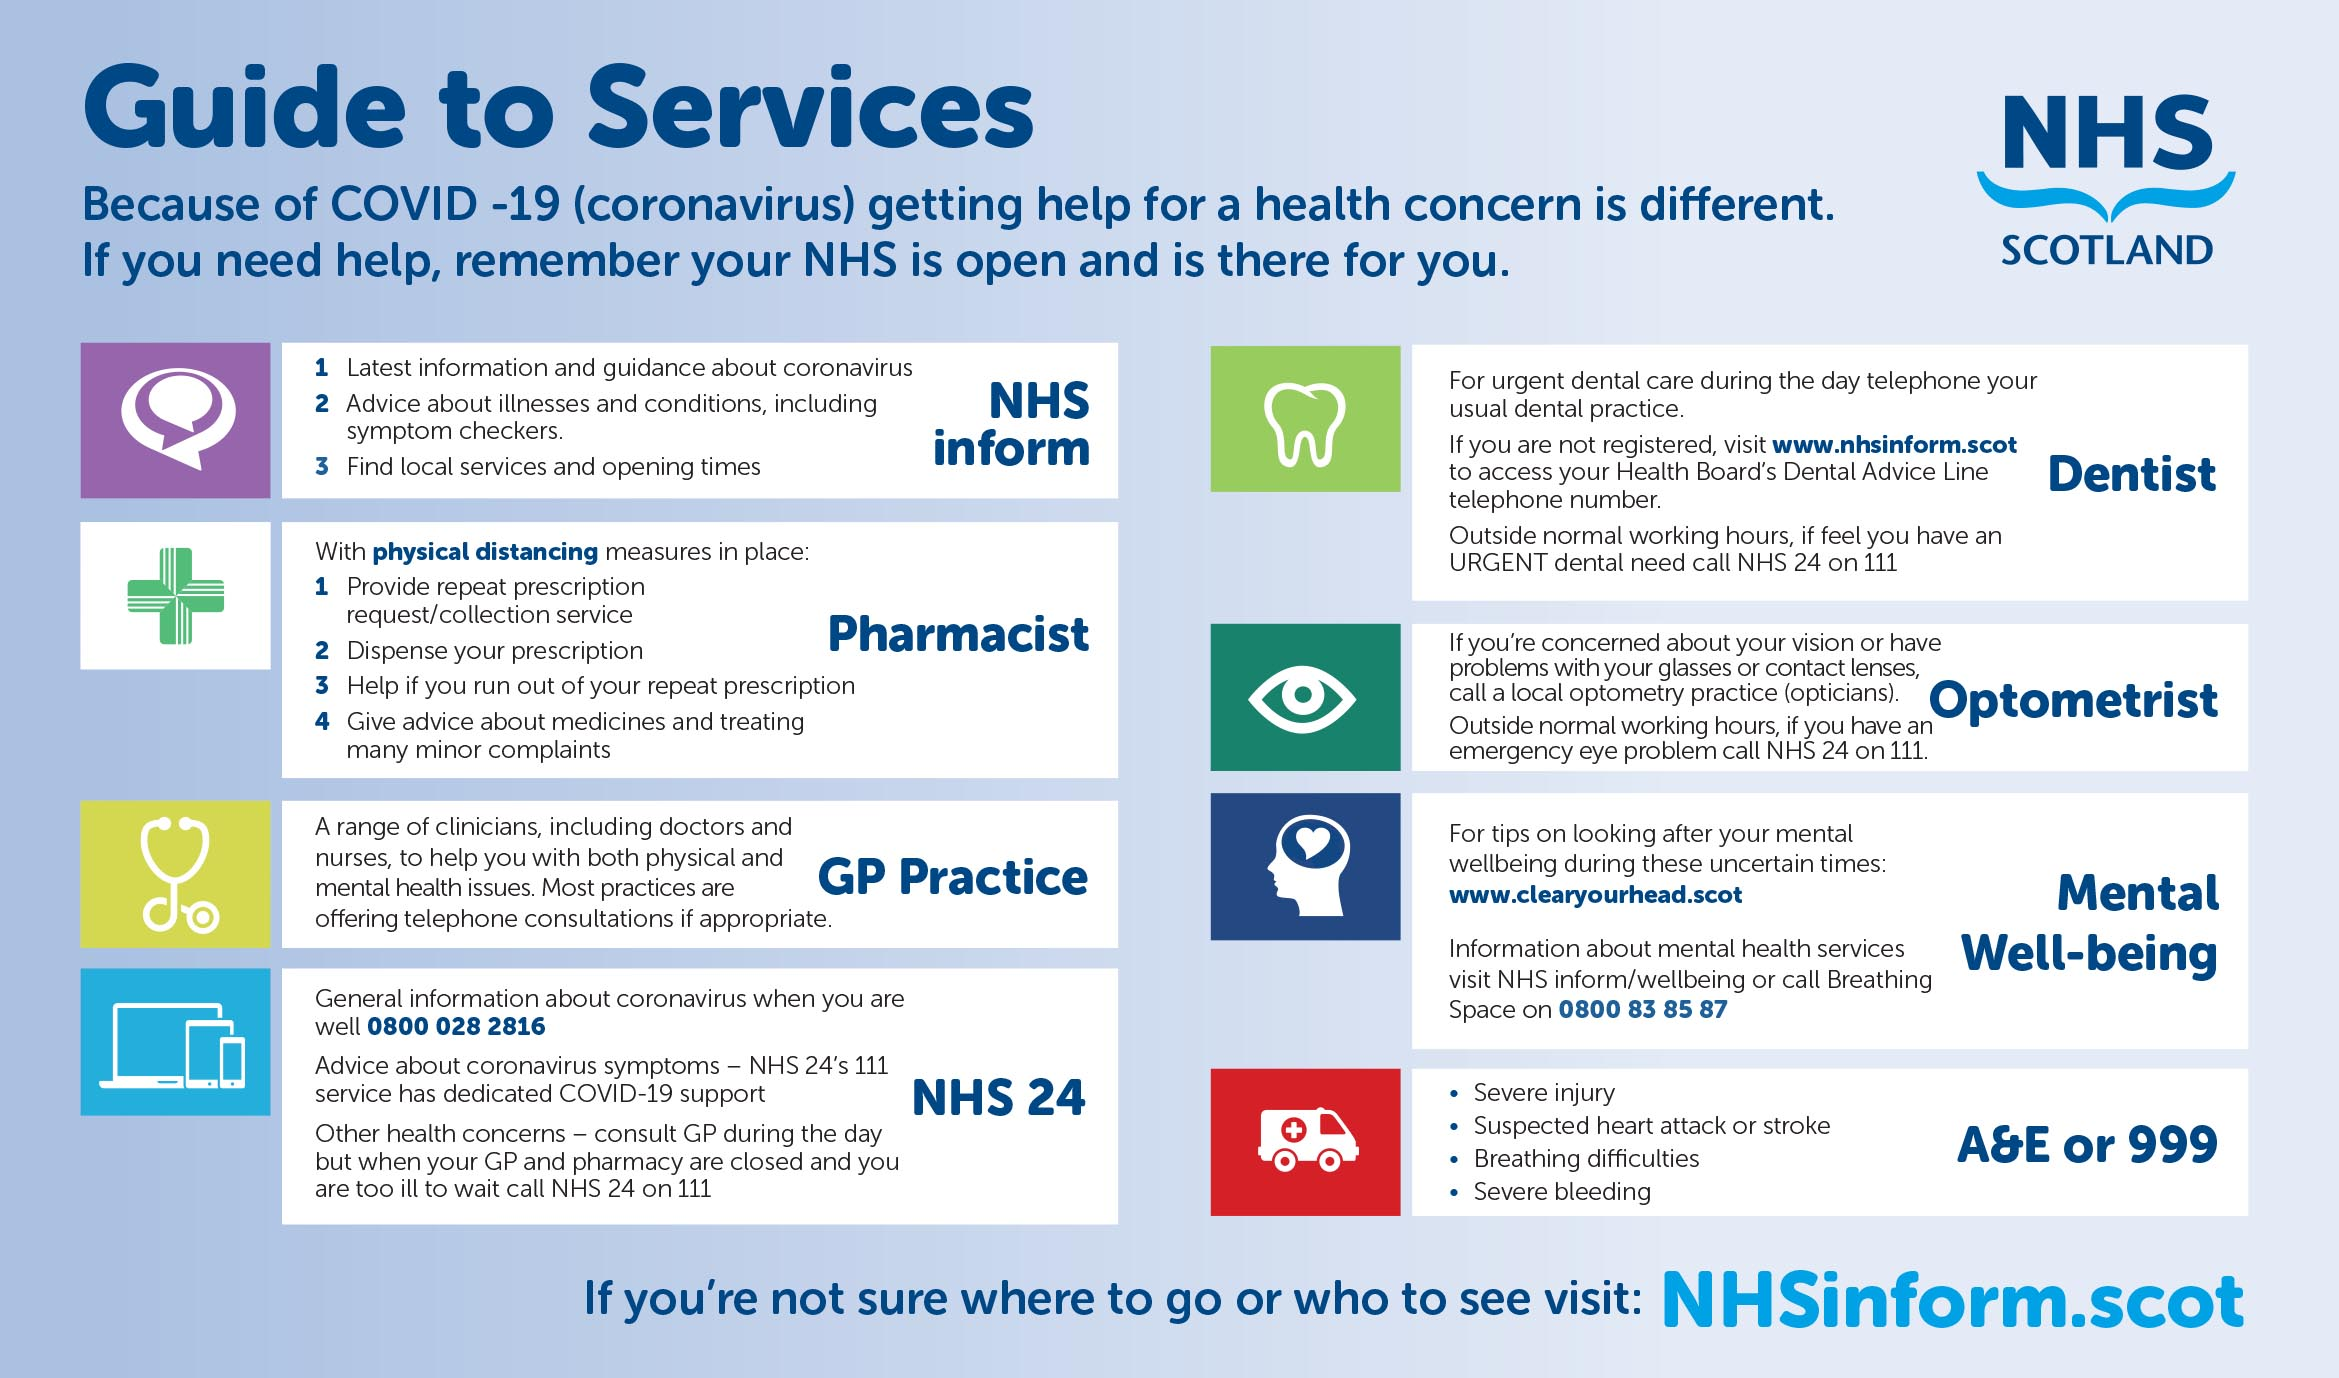 Guide to NHS Services